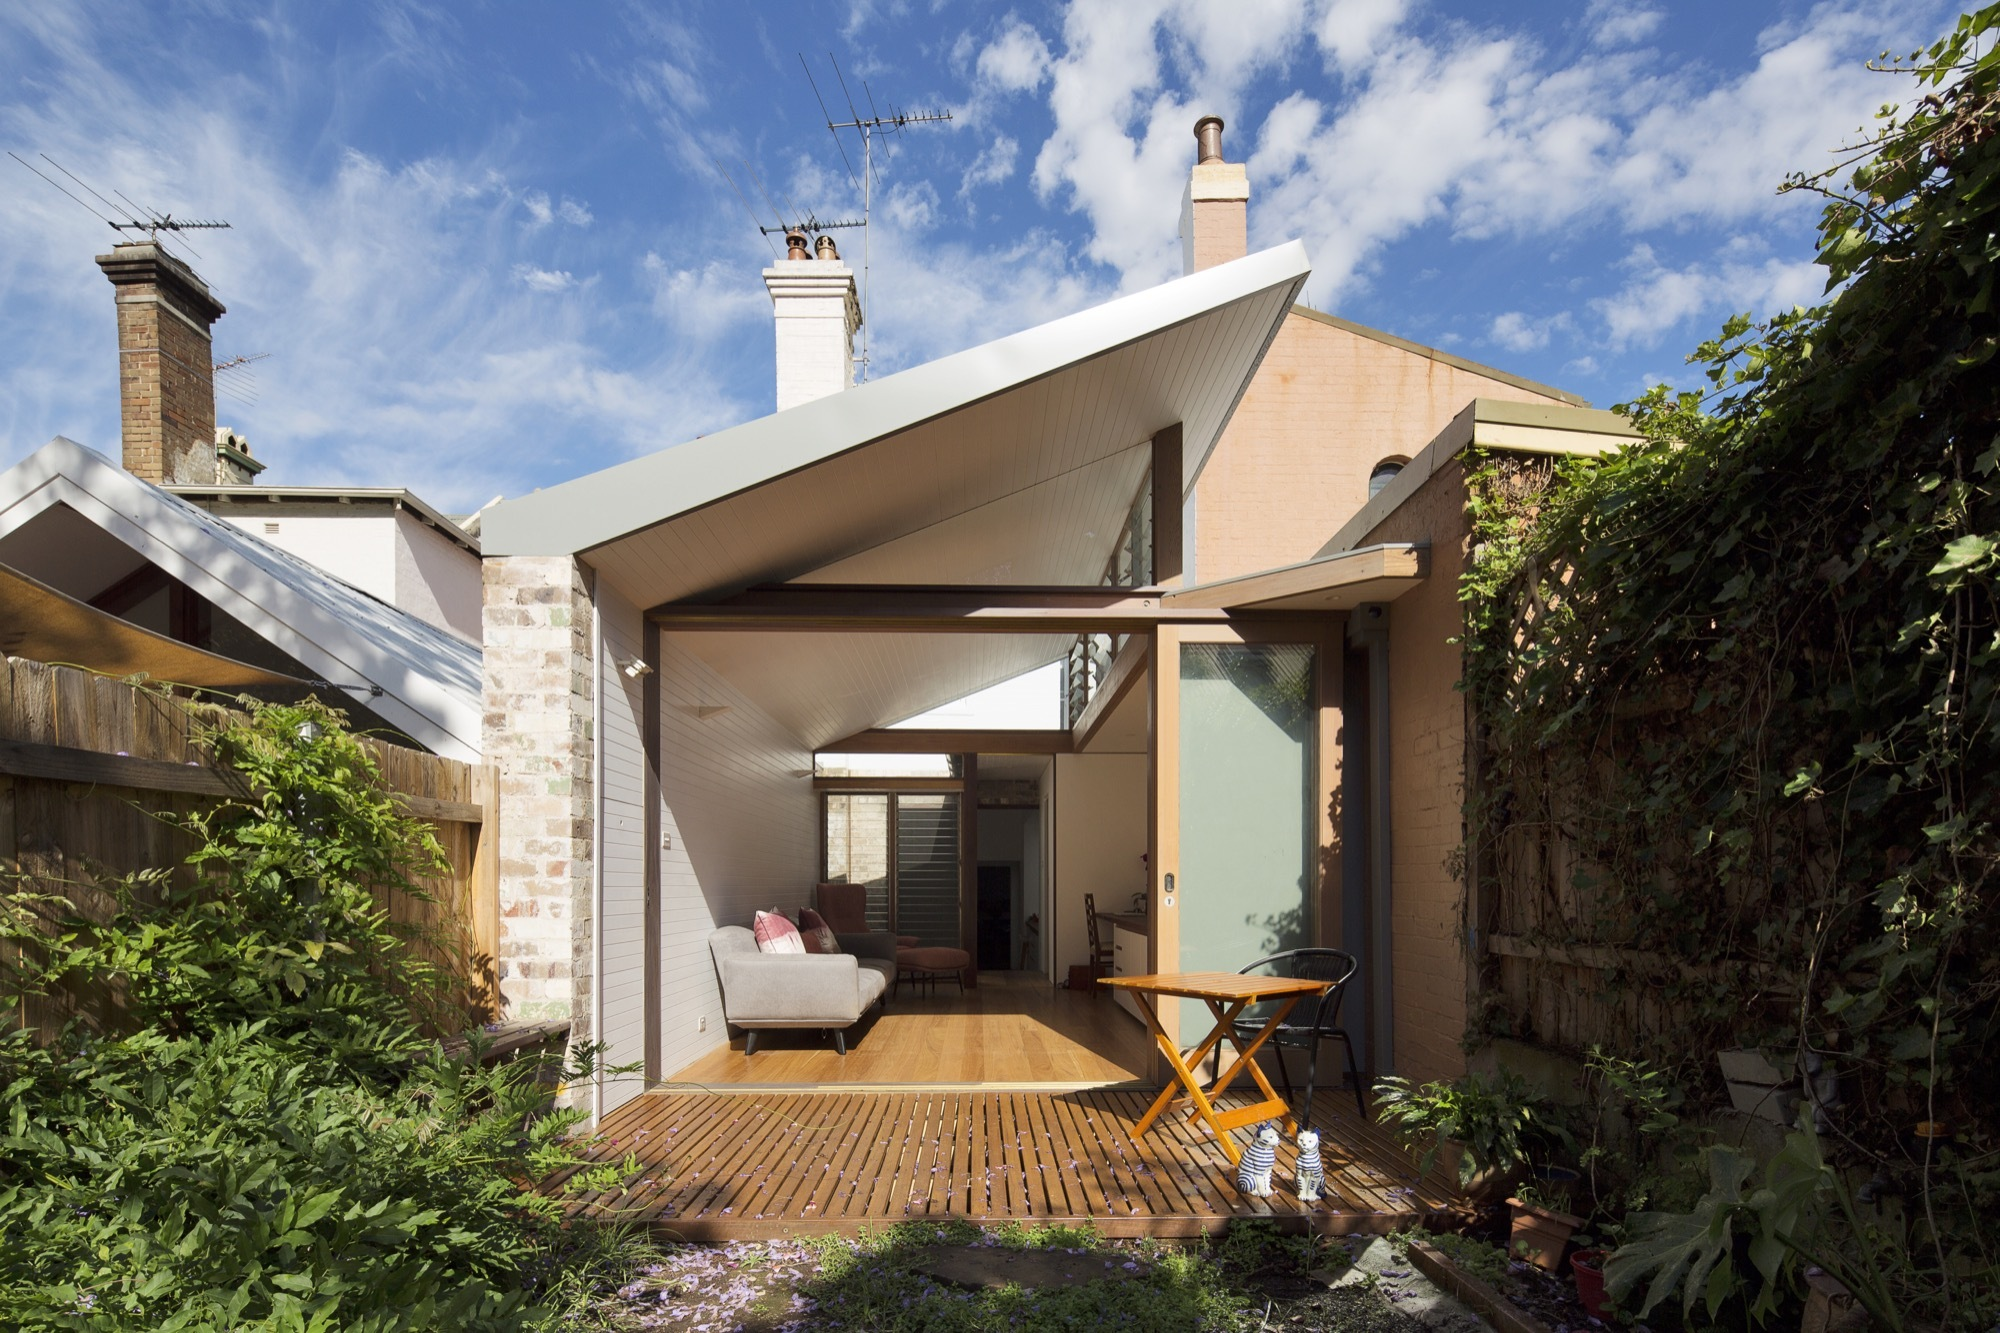 Petersham Courtyard House Adriano Pupilli Architects